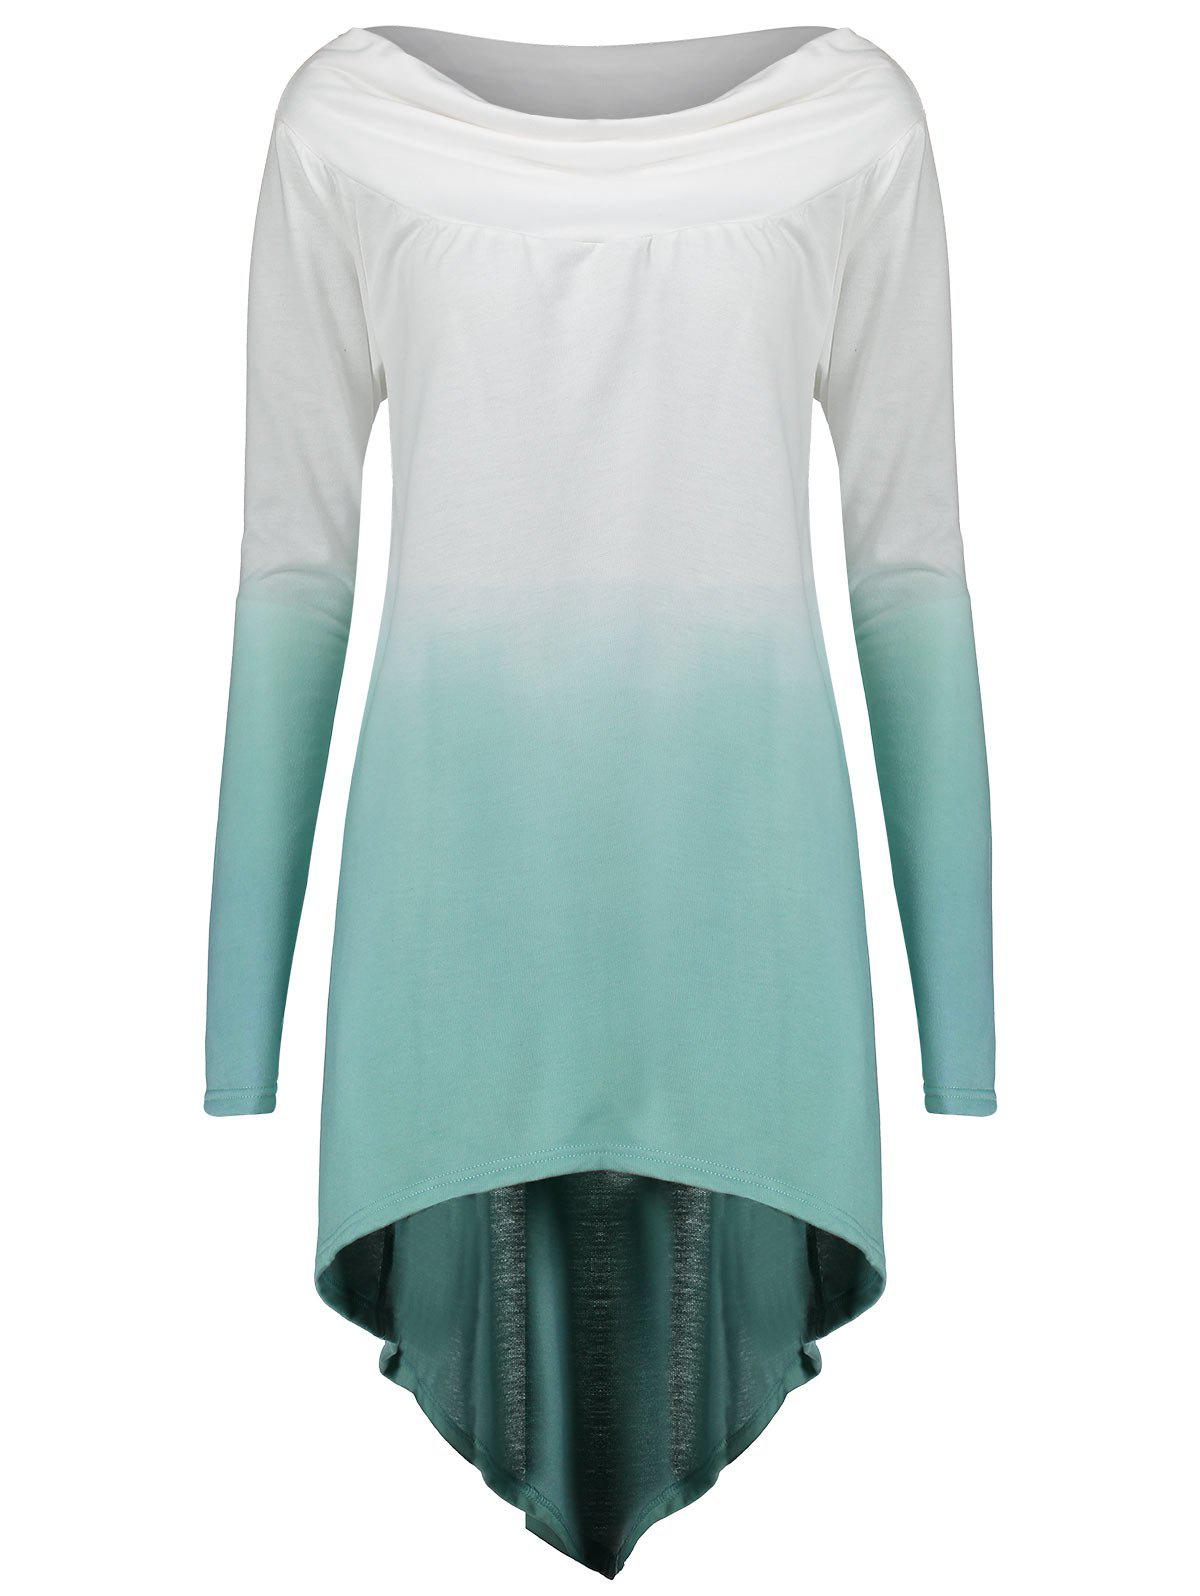 Ombre Print Plus Size High Low Sweatshirt - LAKE GREEN XL